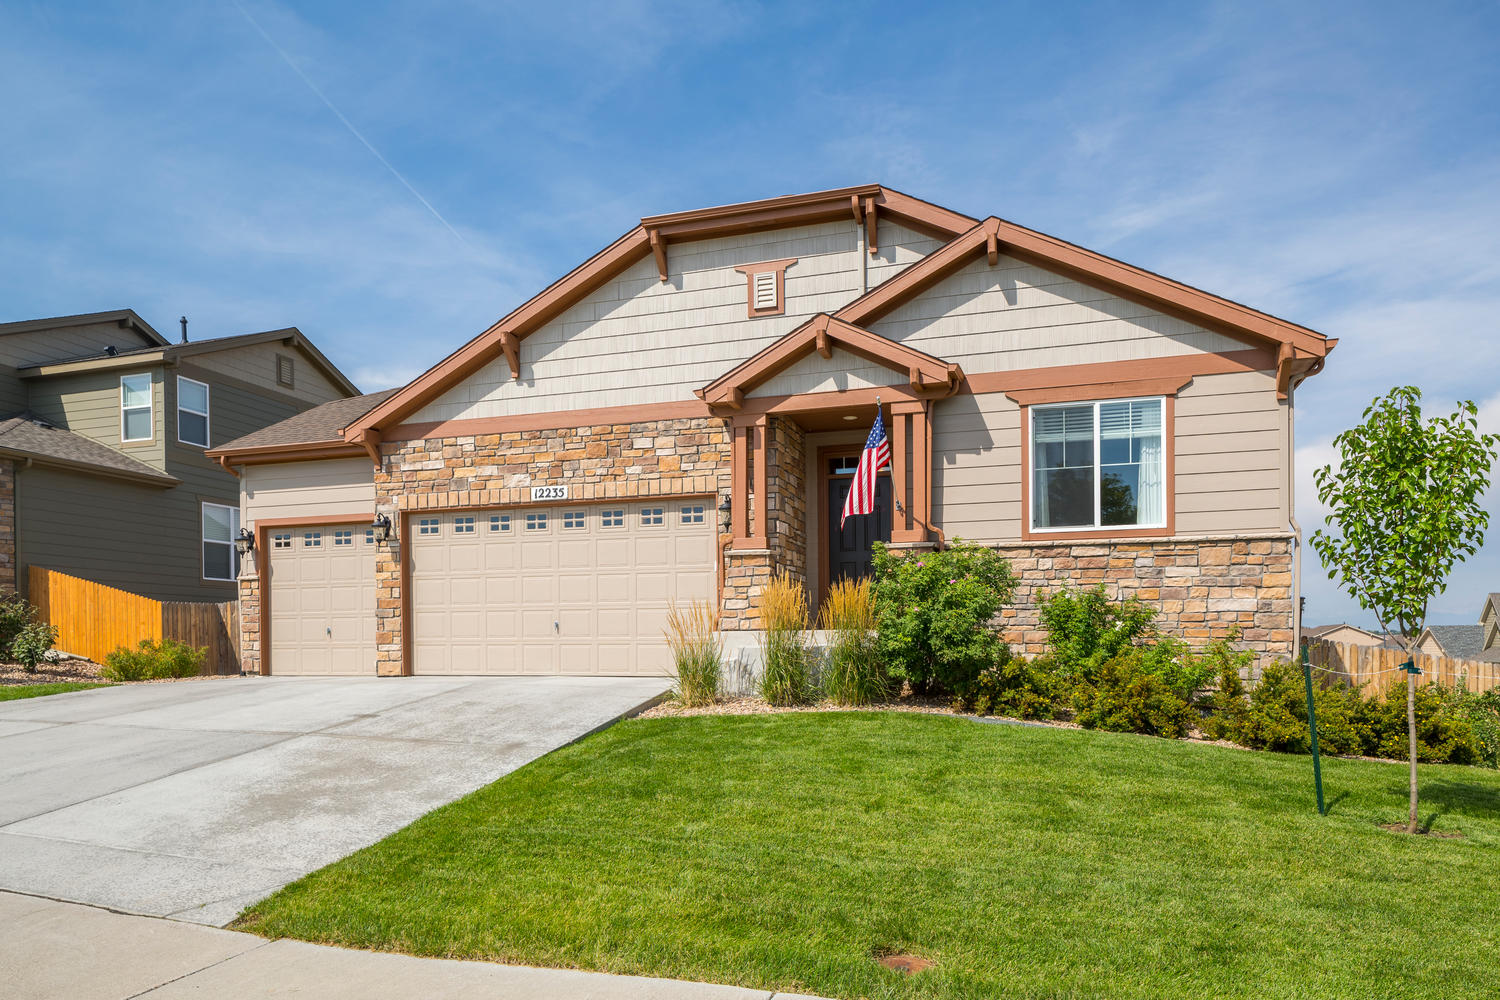 12235 Syracuse St, Thornton, CO 80602